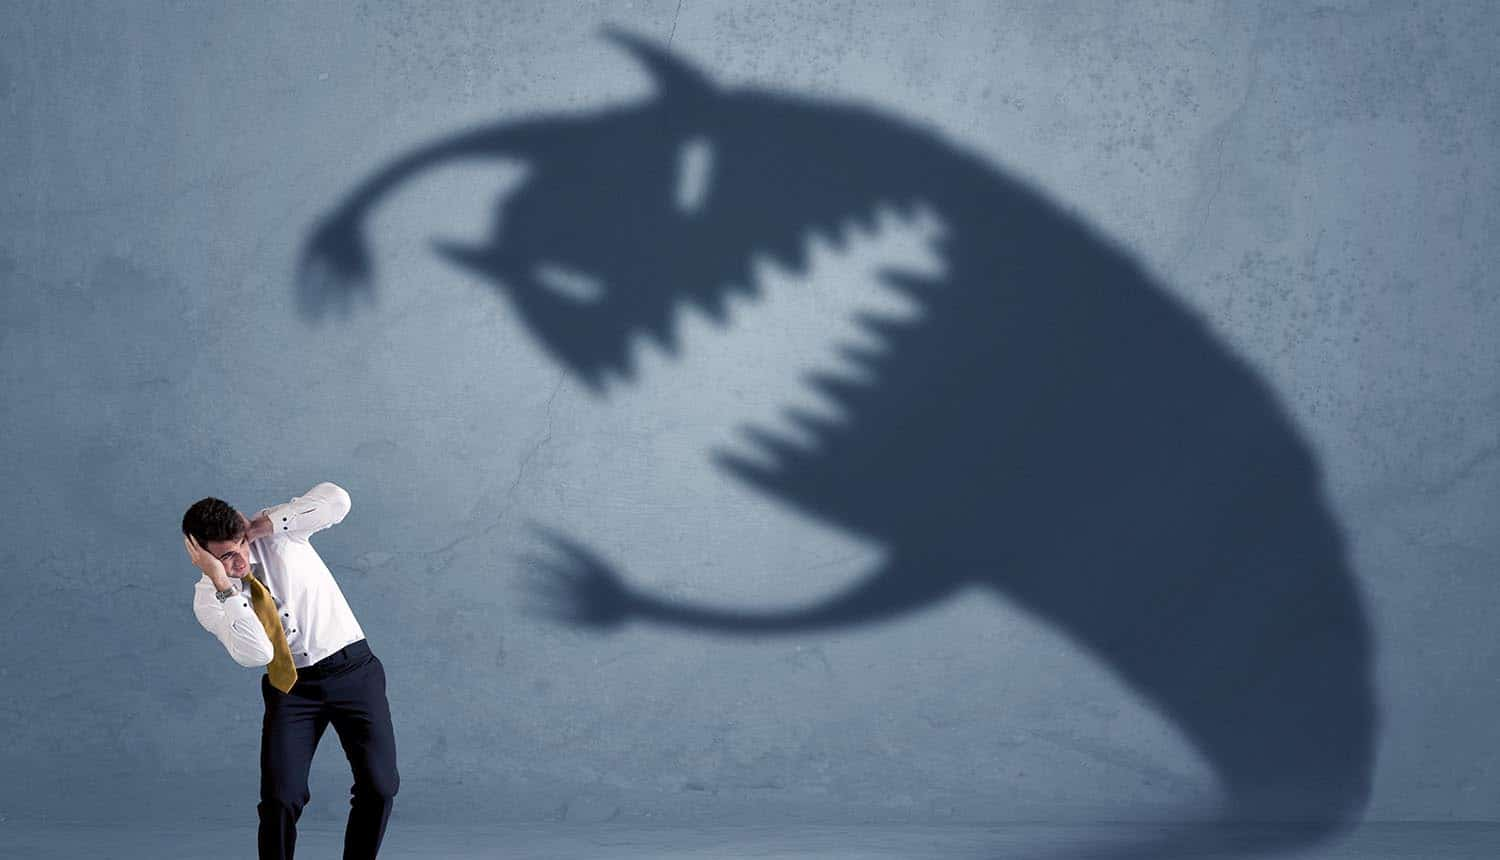 Man afraid of a monster shadow showing the methods to identify and avoid scareware scams